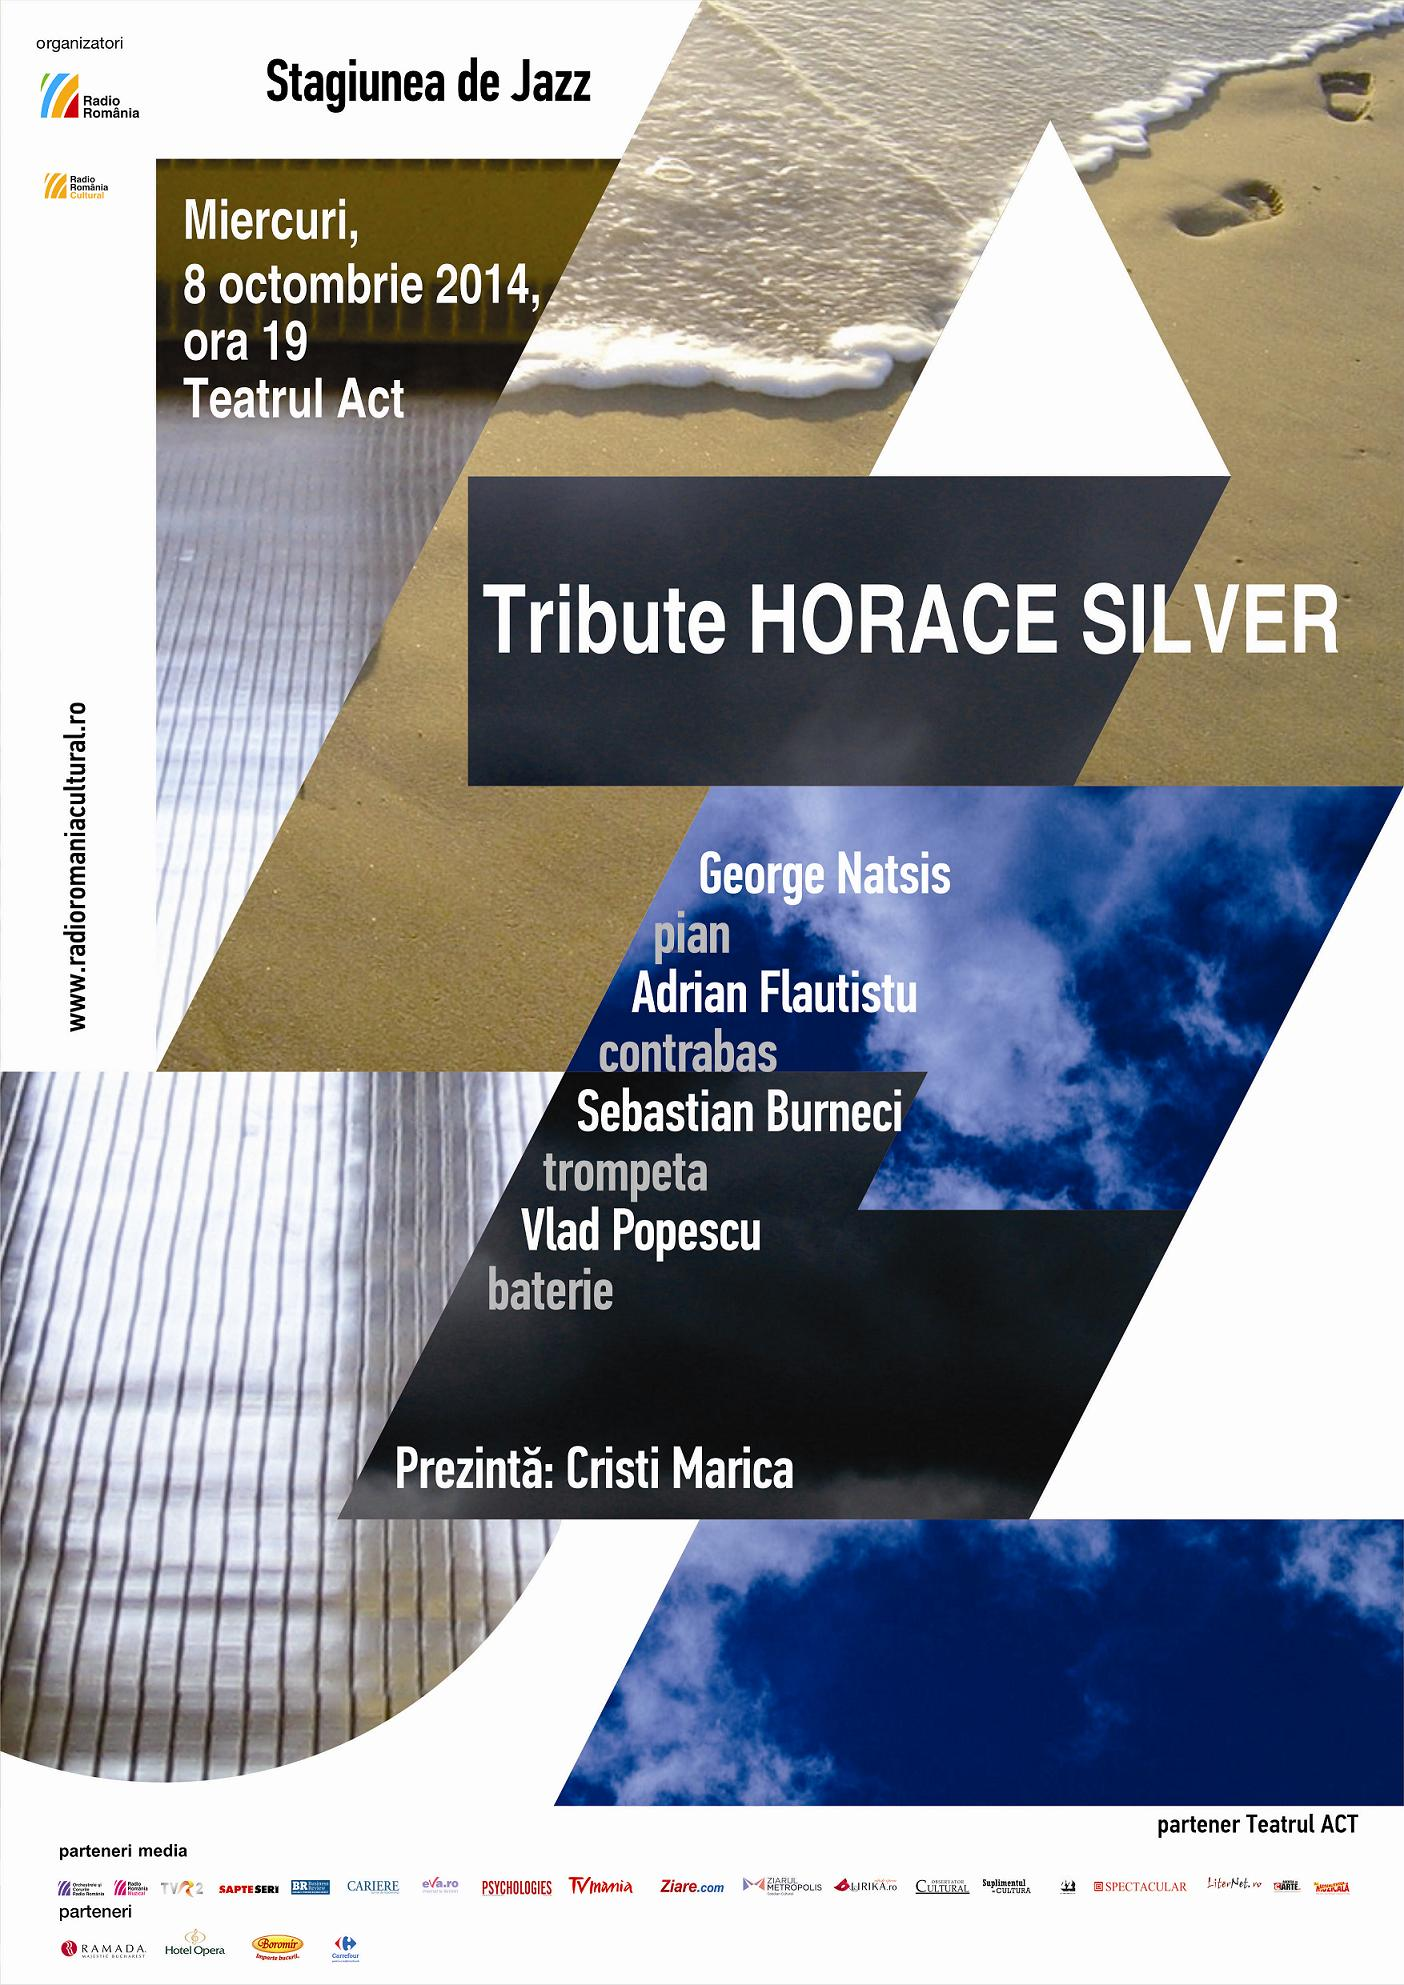 Tribute Horace Silver